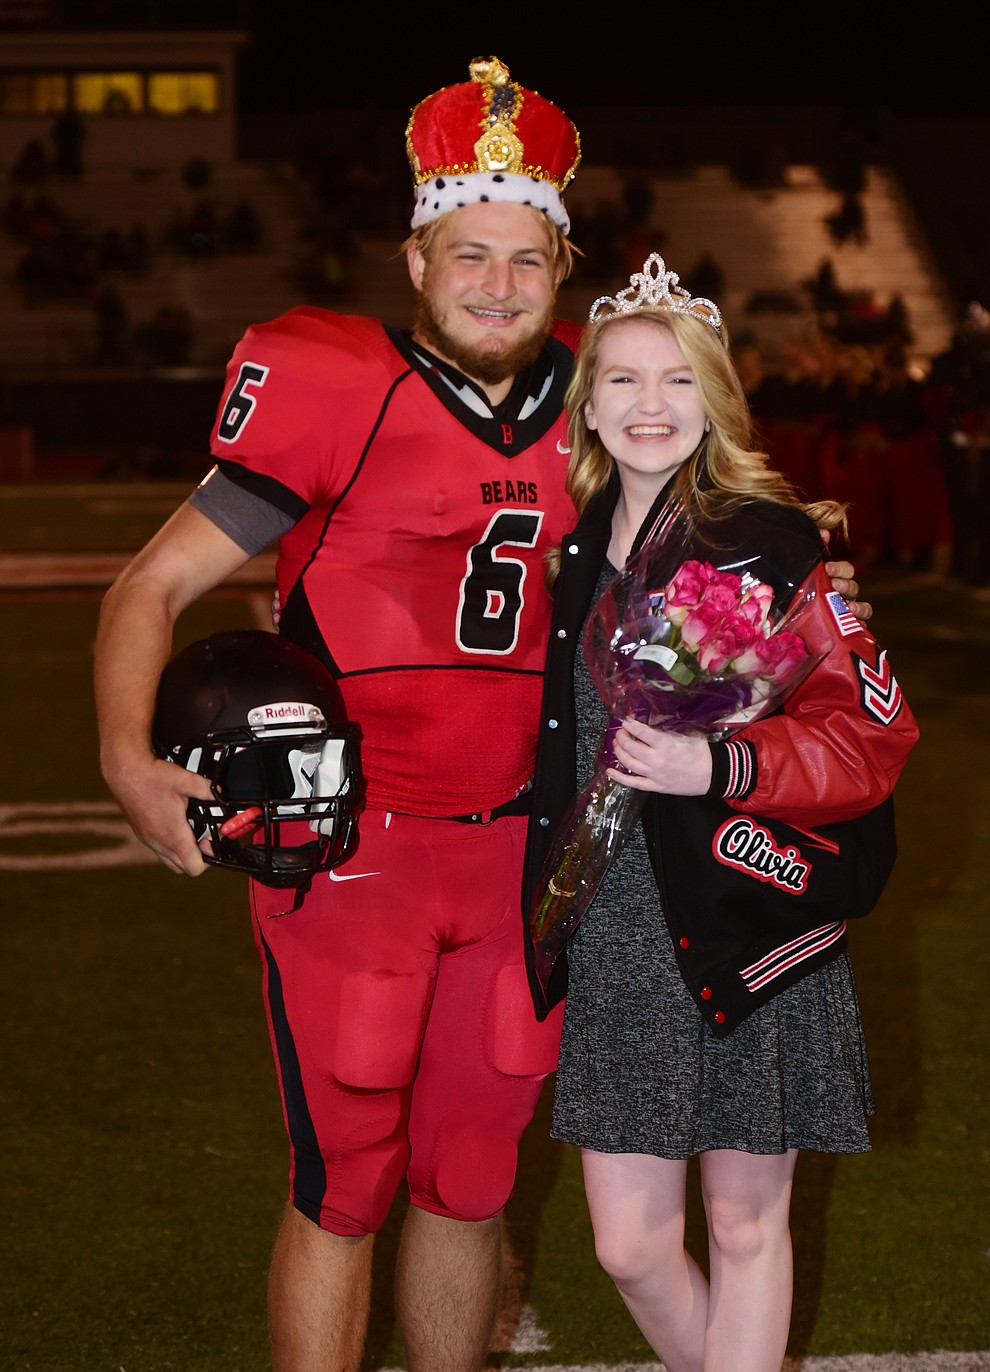 Bradshaw Mountain's 2017 Homecoming King and Queen Timmy Young and Olivia Keating were crowned during halftime of the game against Flagstaff Friday, September 22 in Prescott Valley. (Les Stukenberg/Courier)